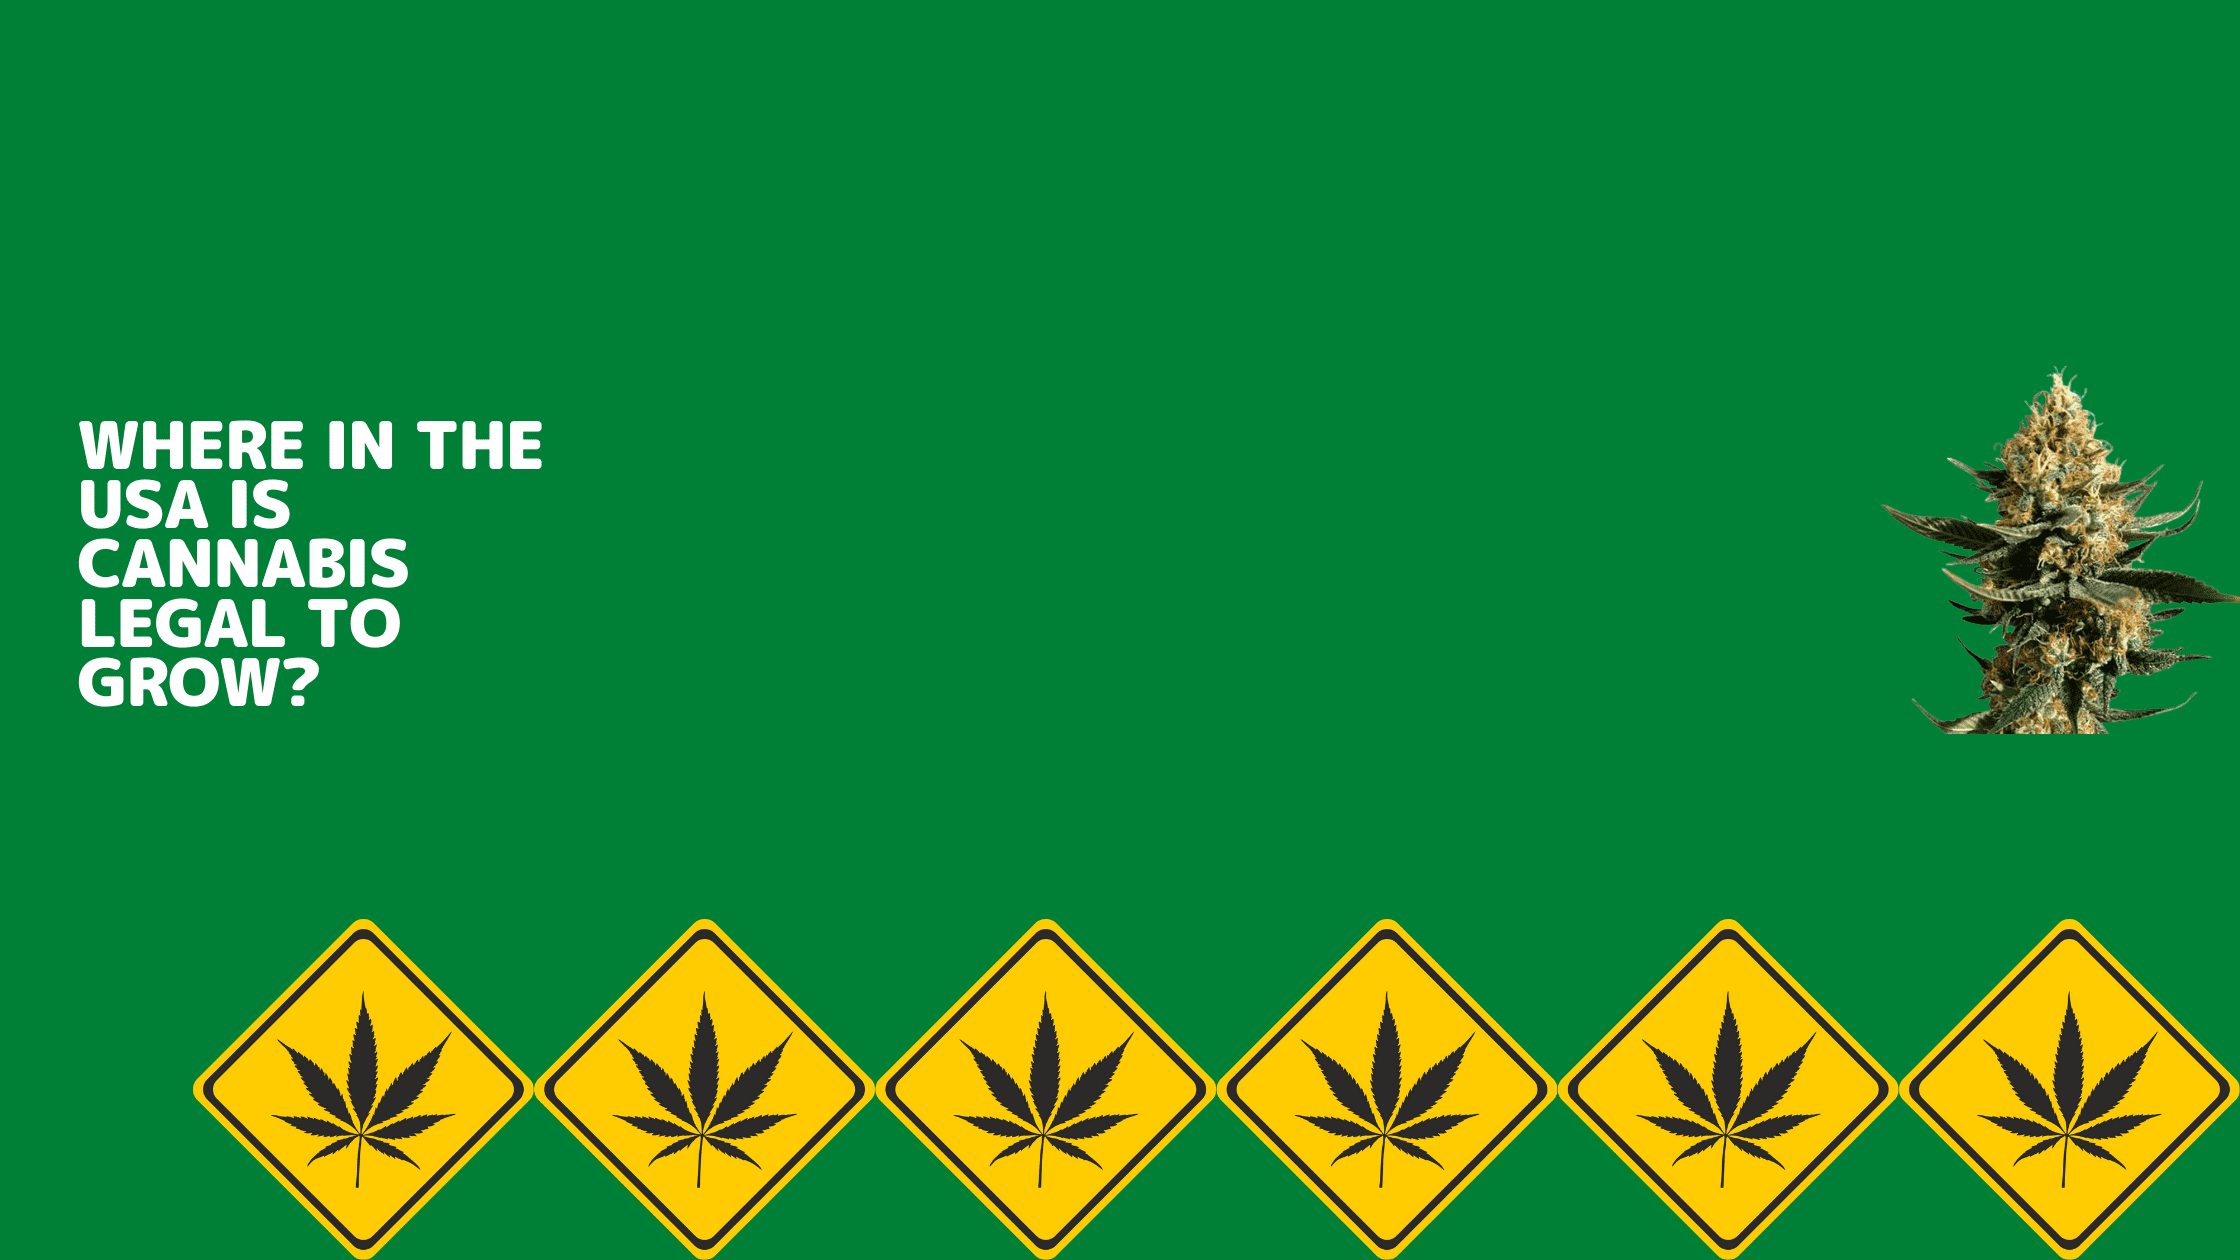 Where in the USA is Cannabis Legal to Grow?